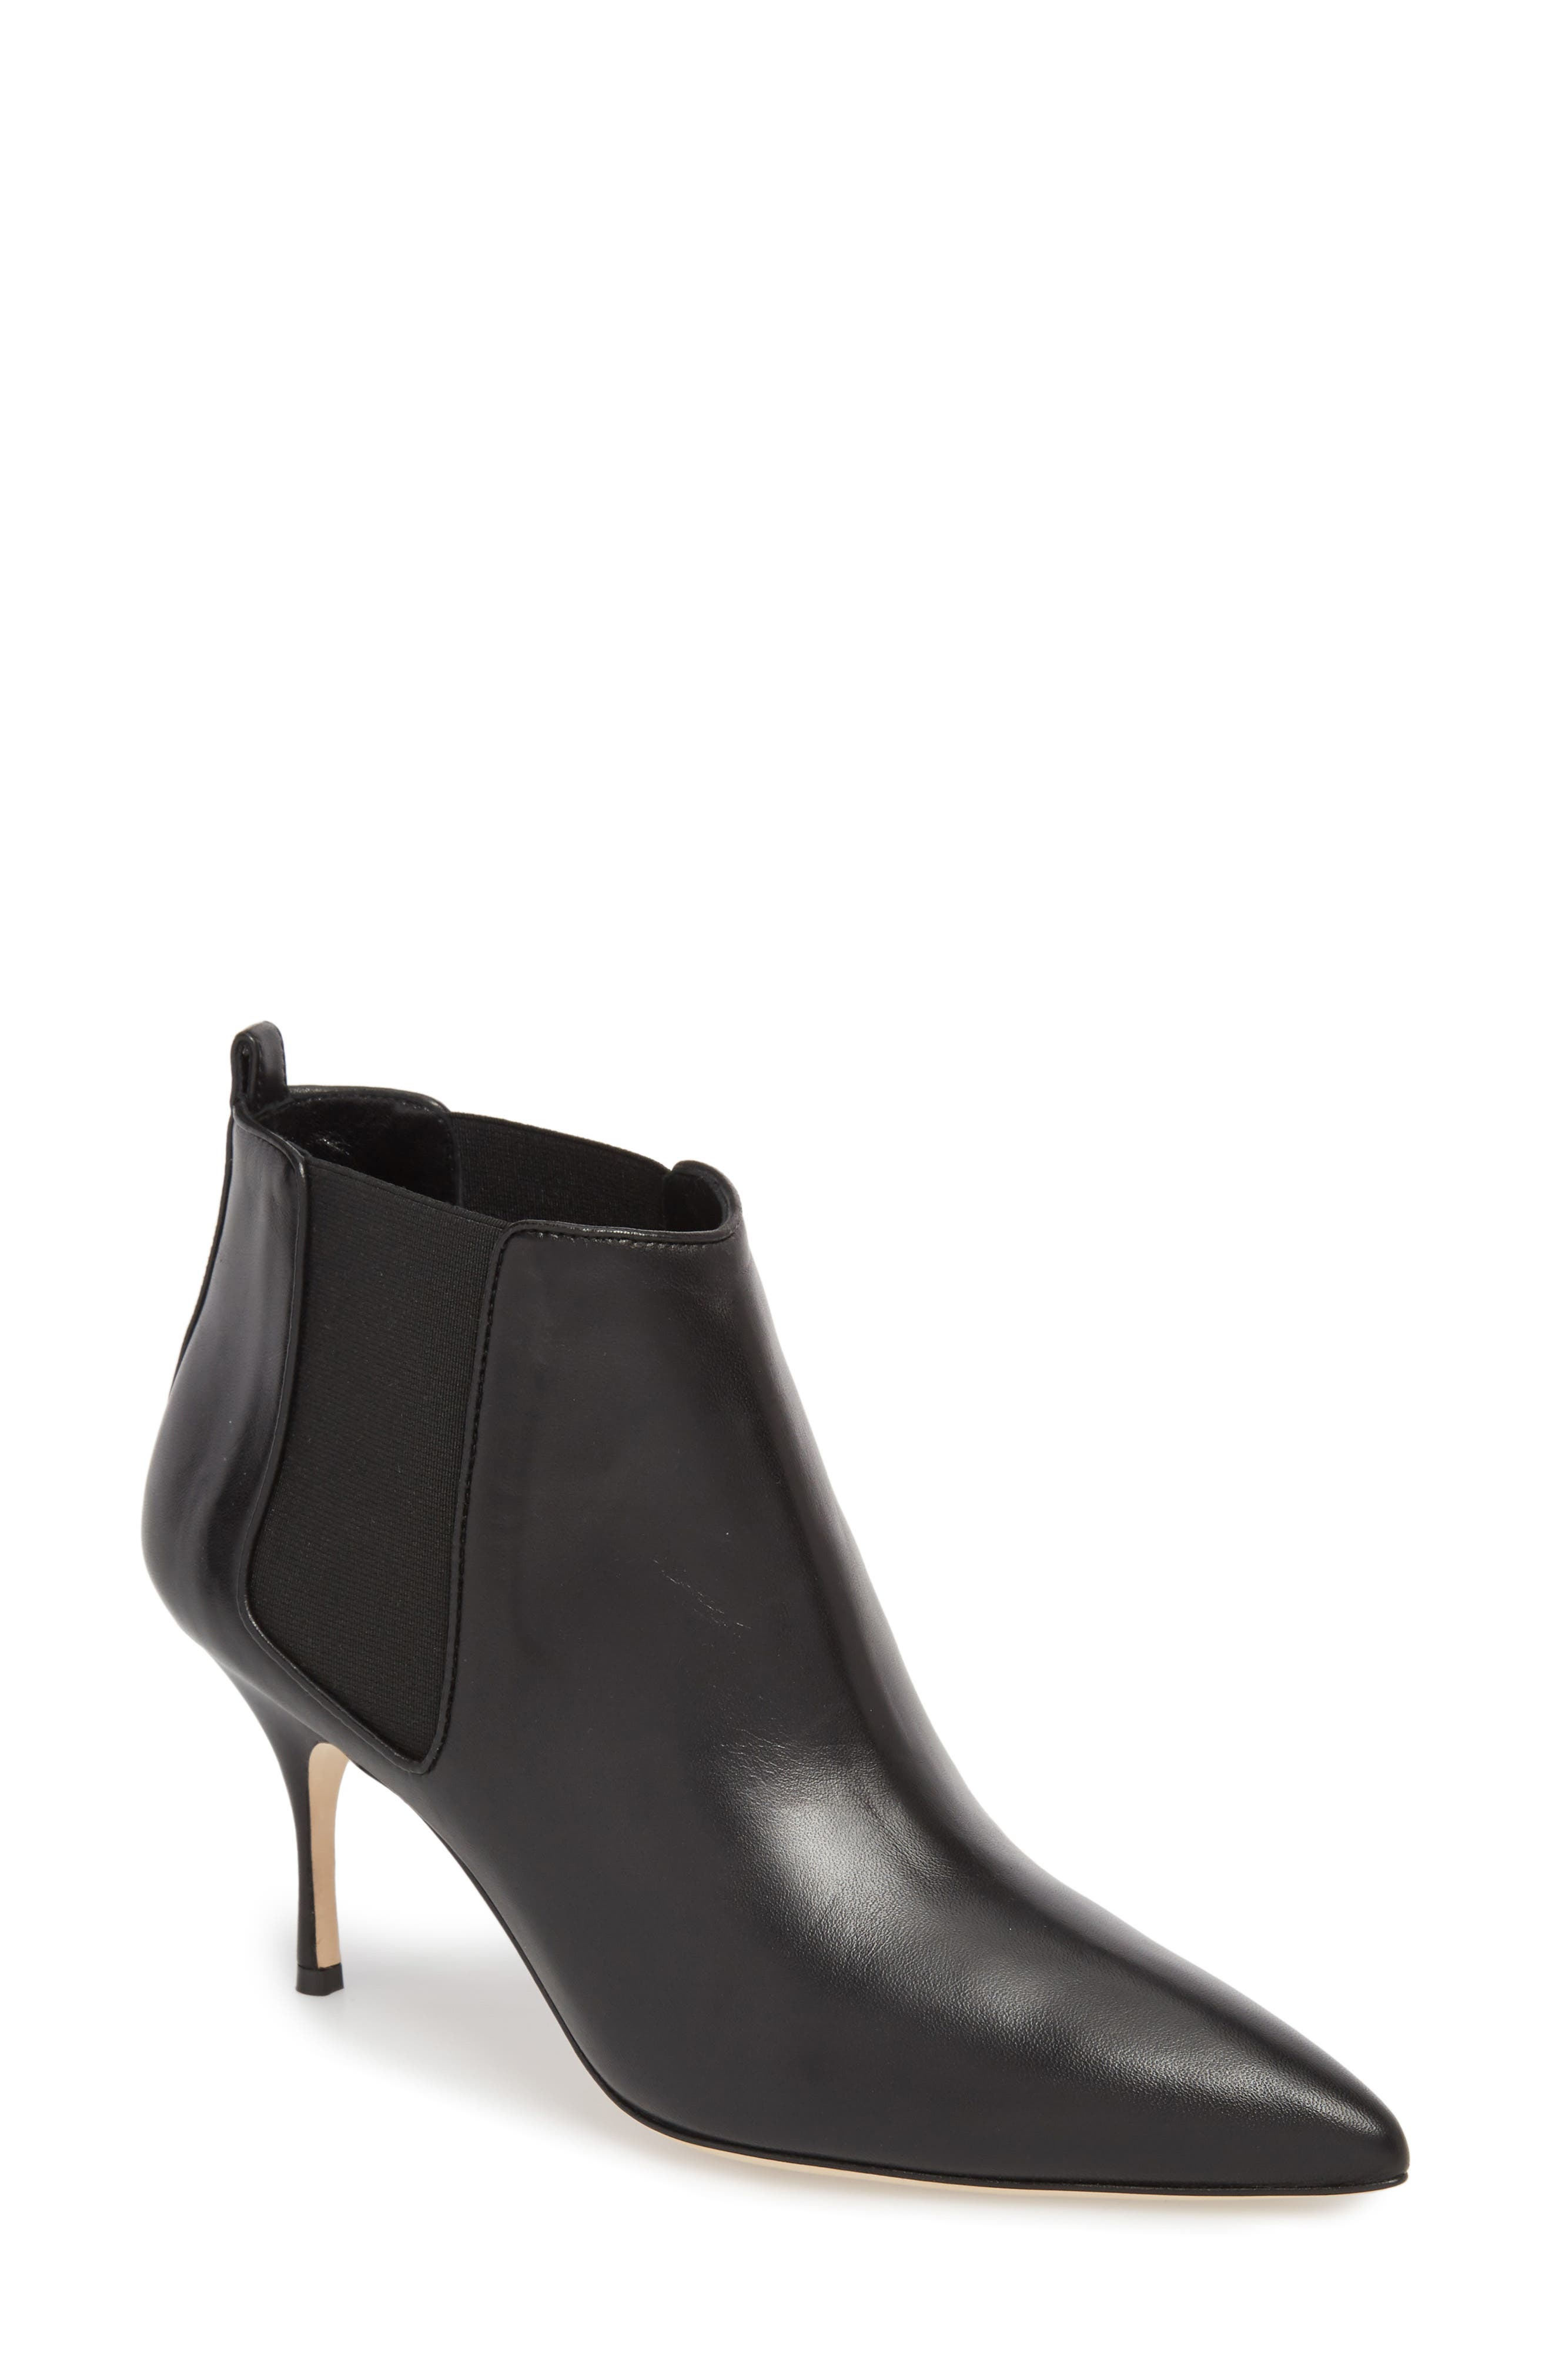 Dildi Pointy Toe Bootie,                             Main thumbnail 1, color,                             BLACK LEATHER